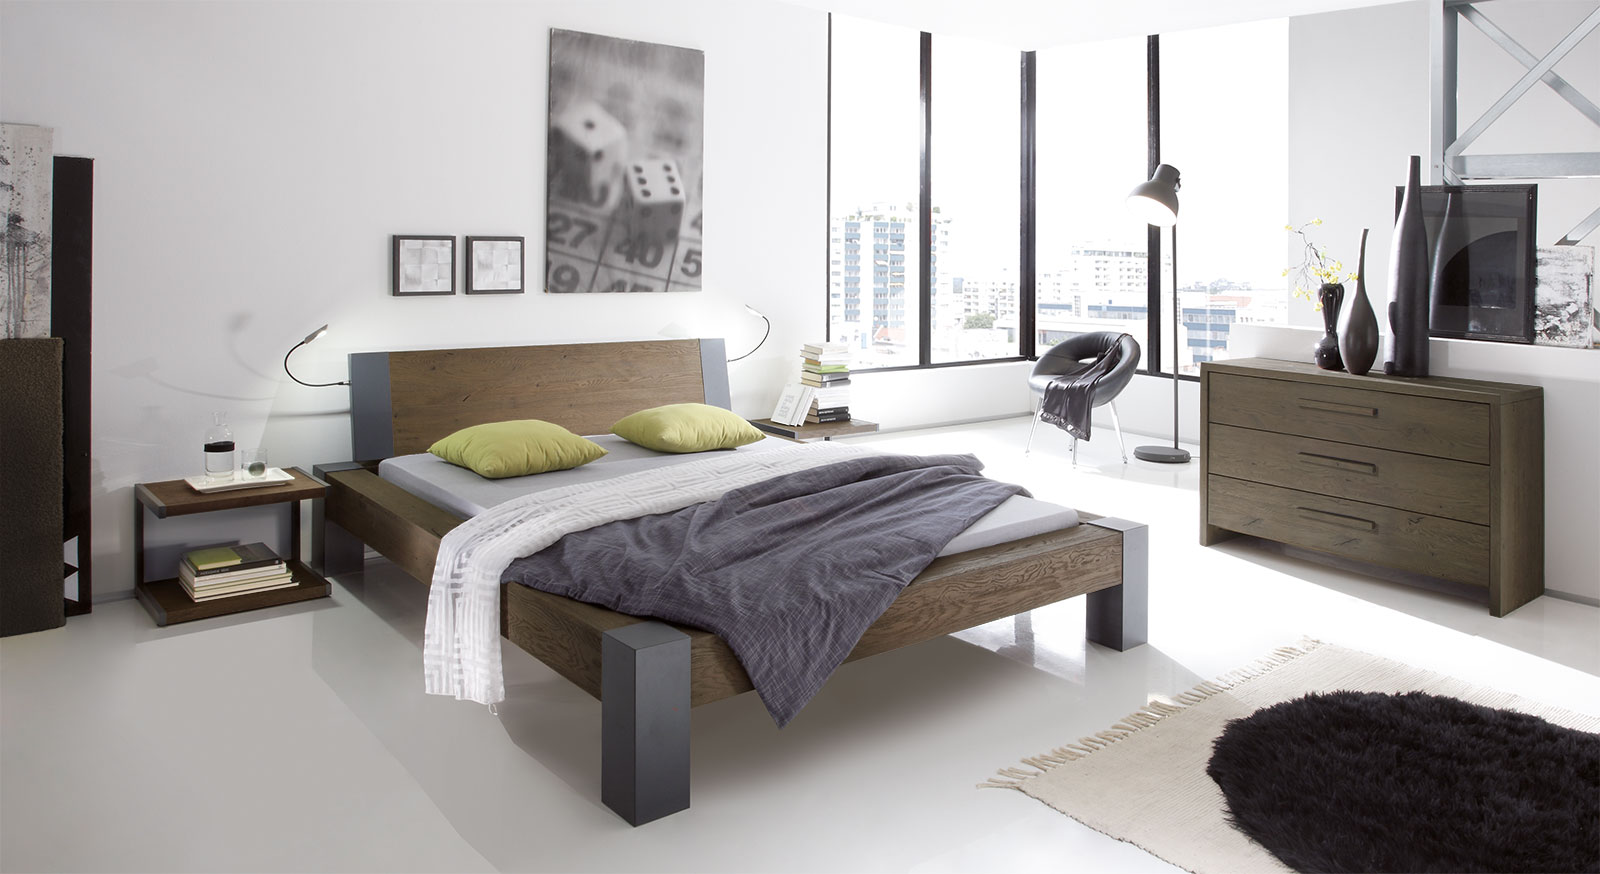 bett aus wildeiche in z b 160x200 cm serio. Black Bedroom Furniture Sets. Home Design Ideas